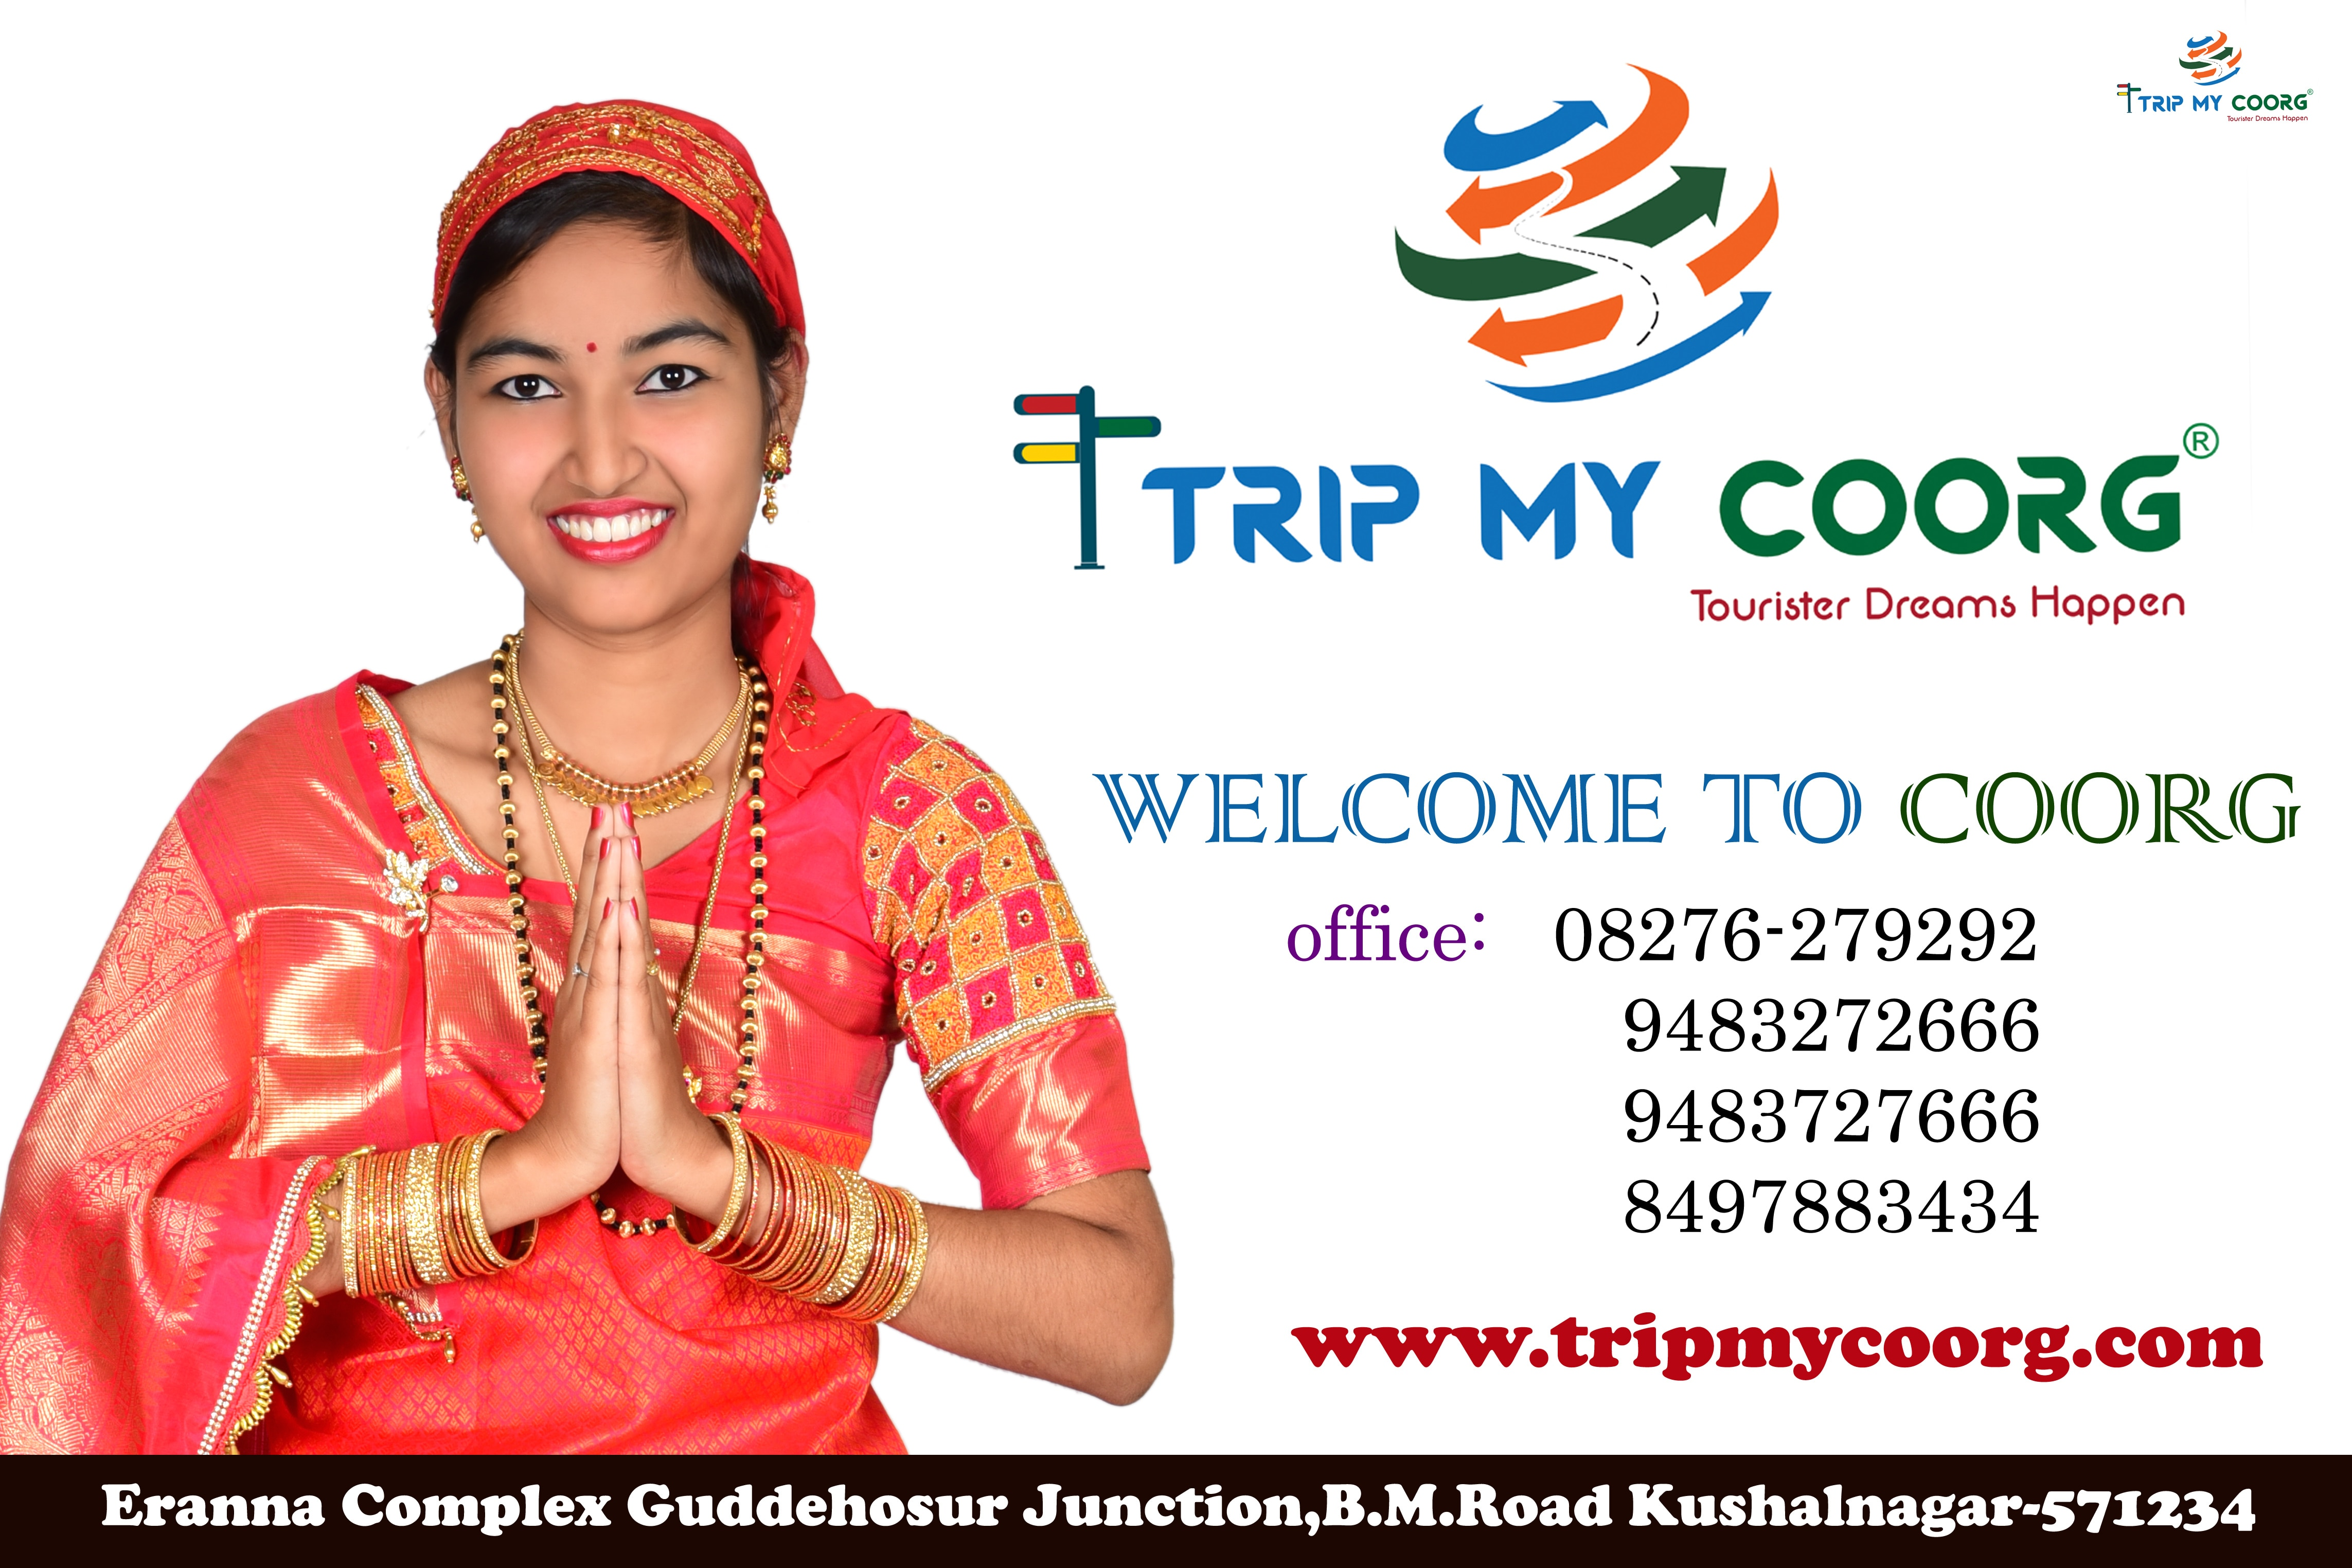 image of Trip My Coorg